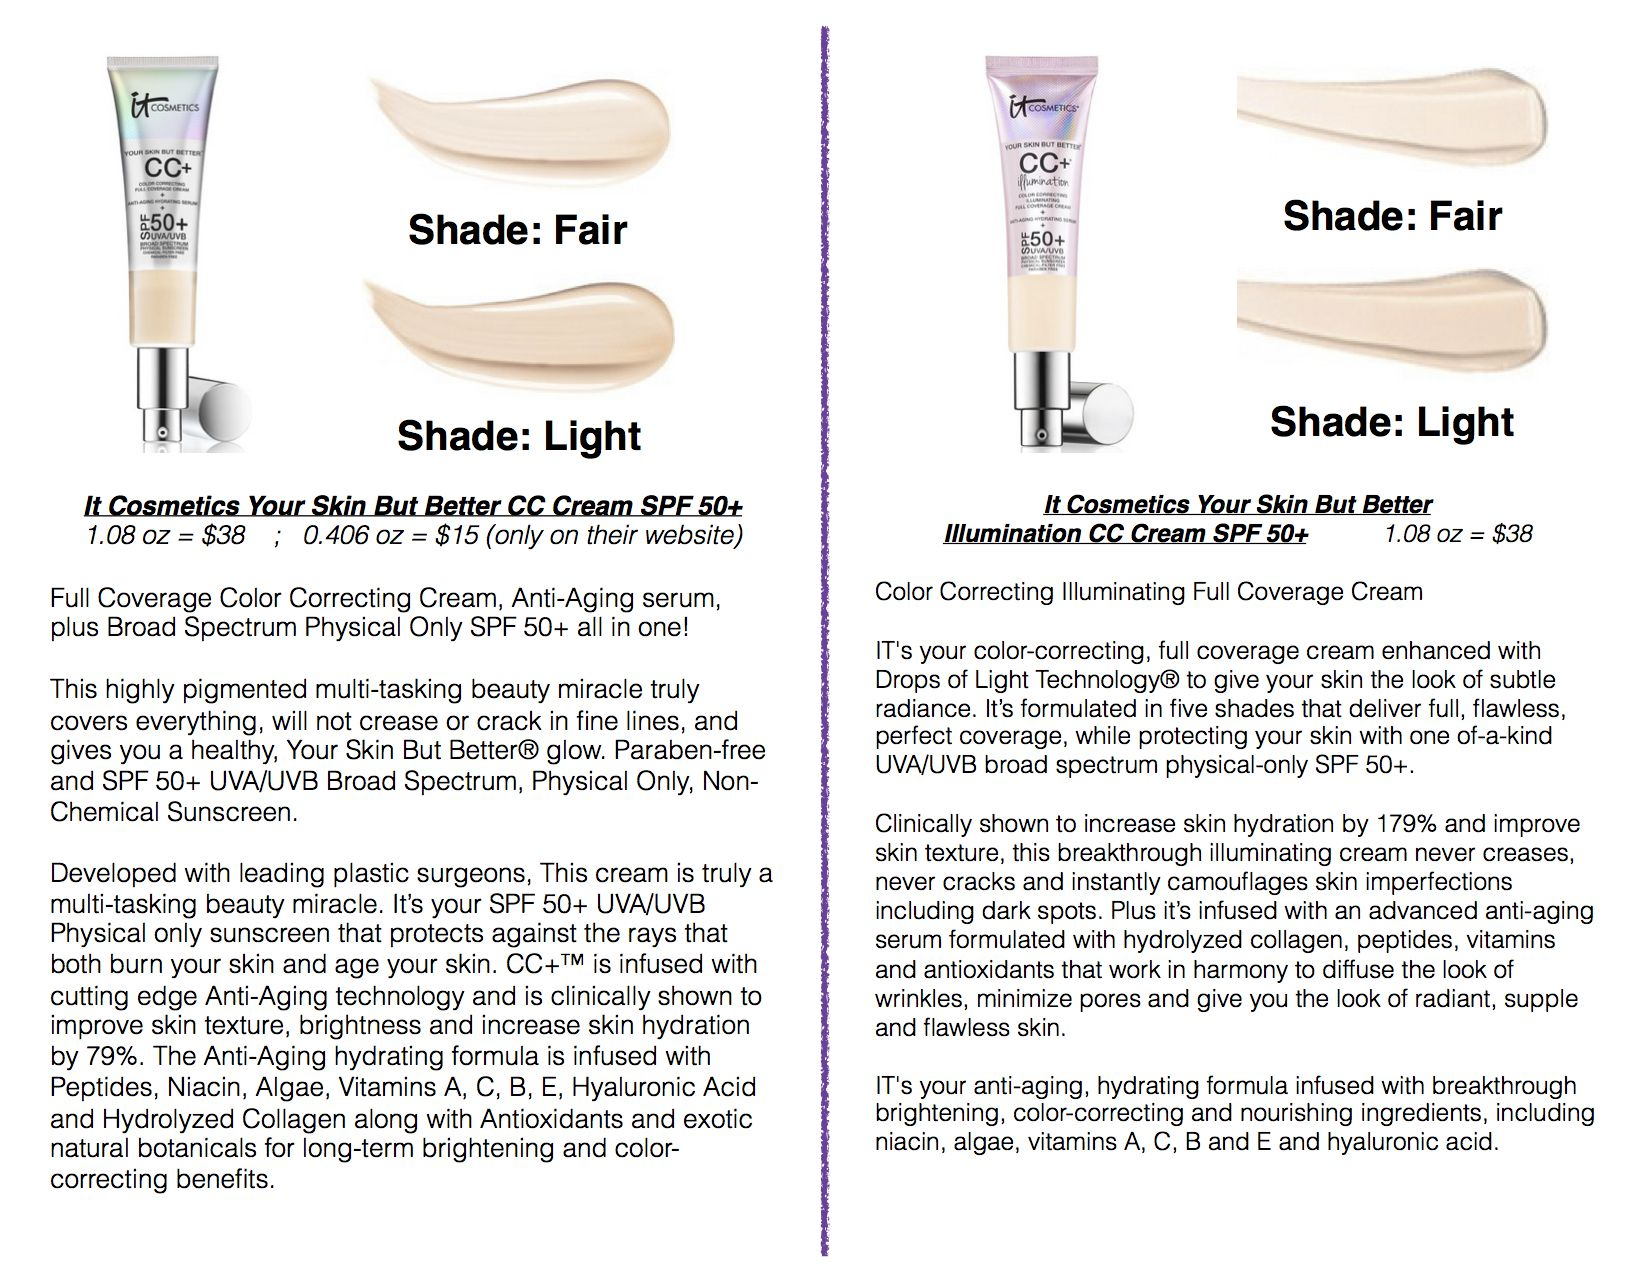 Pin By Colleen B On Makeup It Cosmetics Cc Cream Swatches It Cosmetics Cc Cream No Foundation Makeup